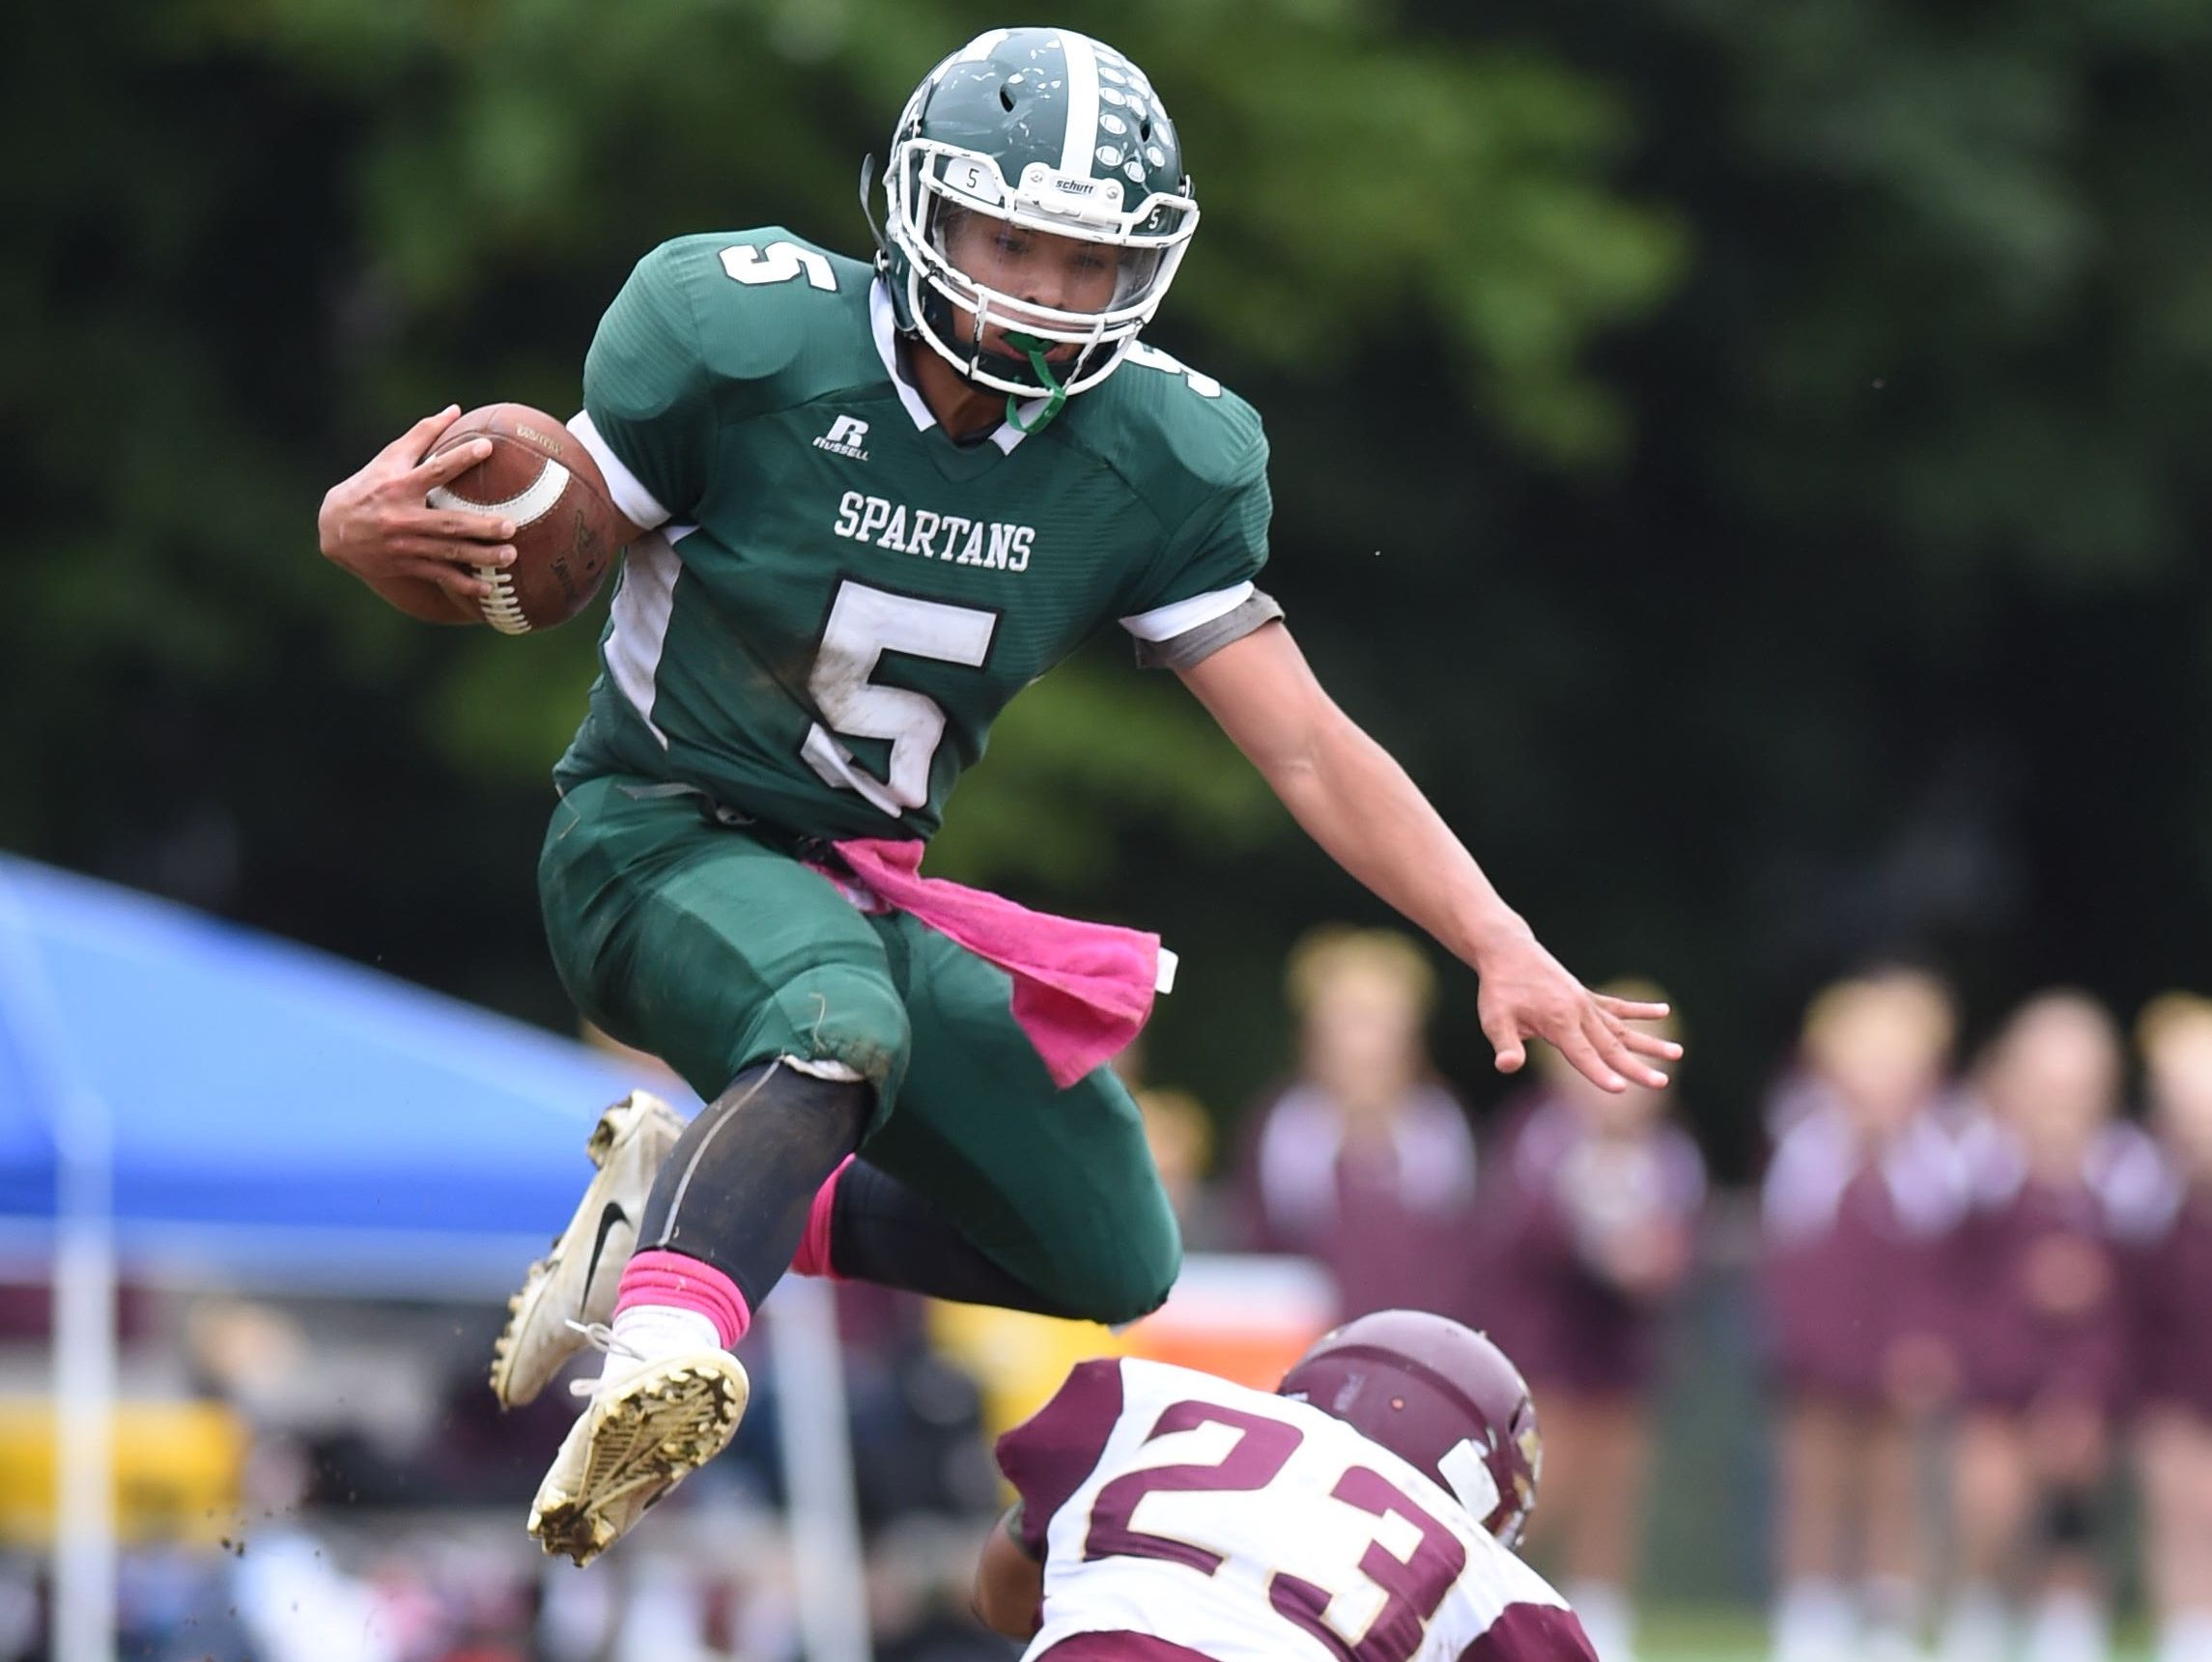 Spackenkill's Camron Abalos jumps over O'Neill's James Matautia during Saturday's game at Spackenkill.